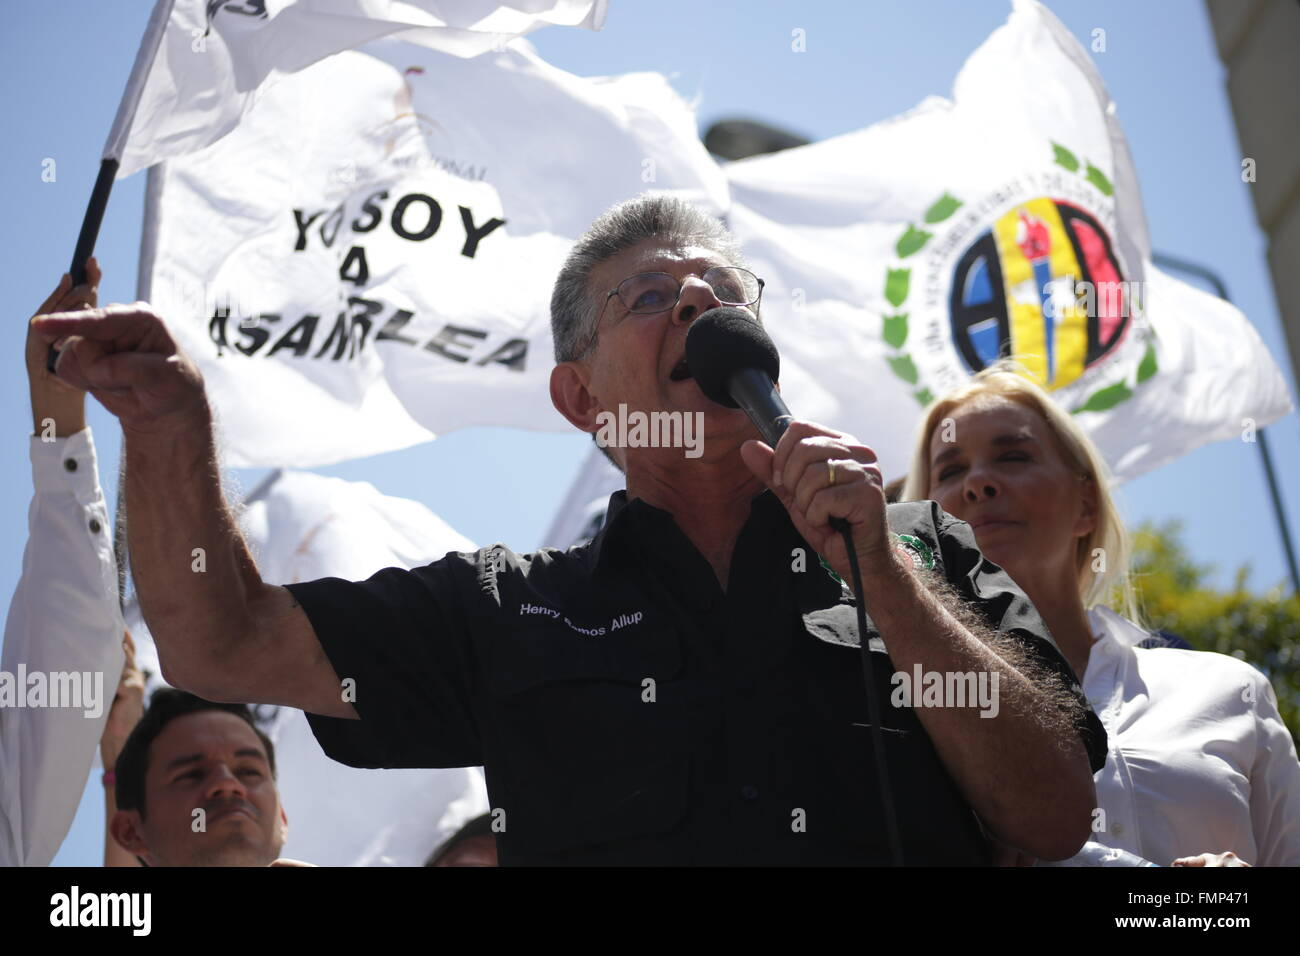 (160313) -- CARACAS, March 13, 2016 (Xinhua) -- Henry Ramos Allup, President of Venezuela's National Assembly - Stock Image